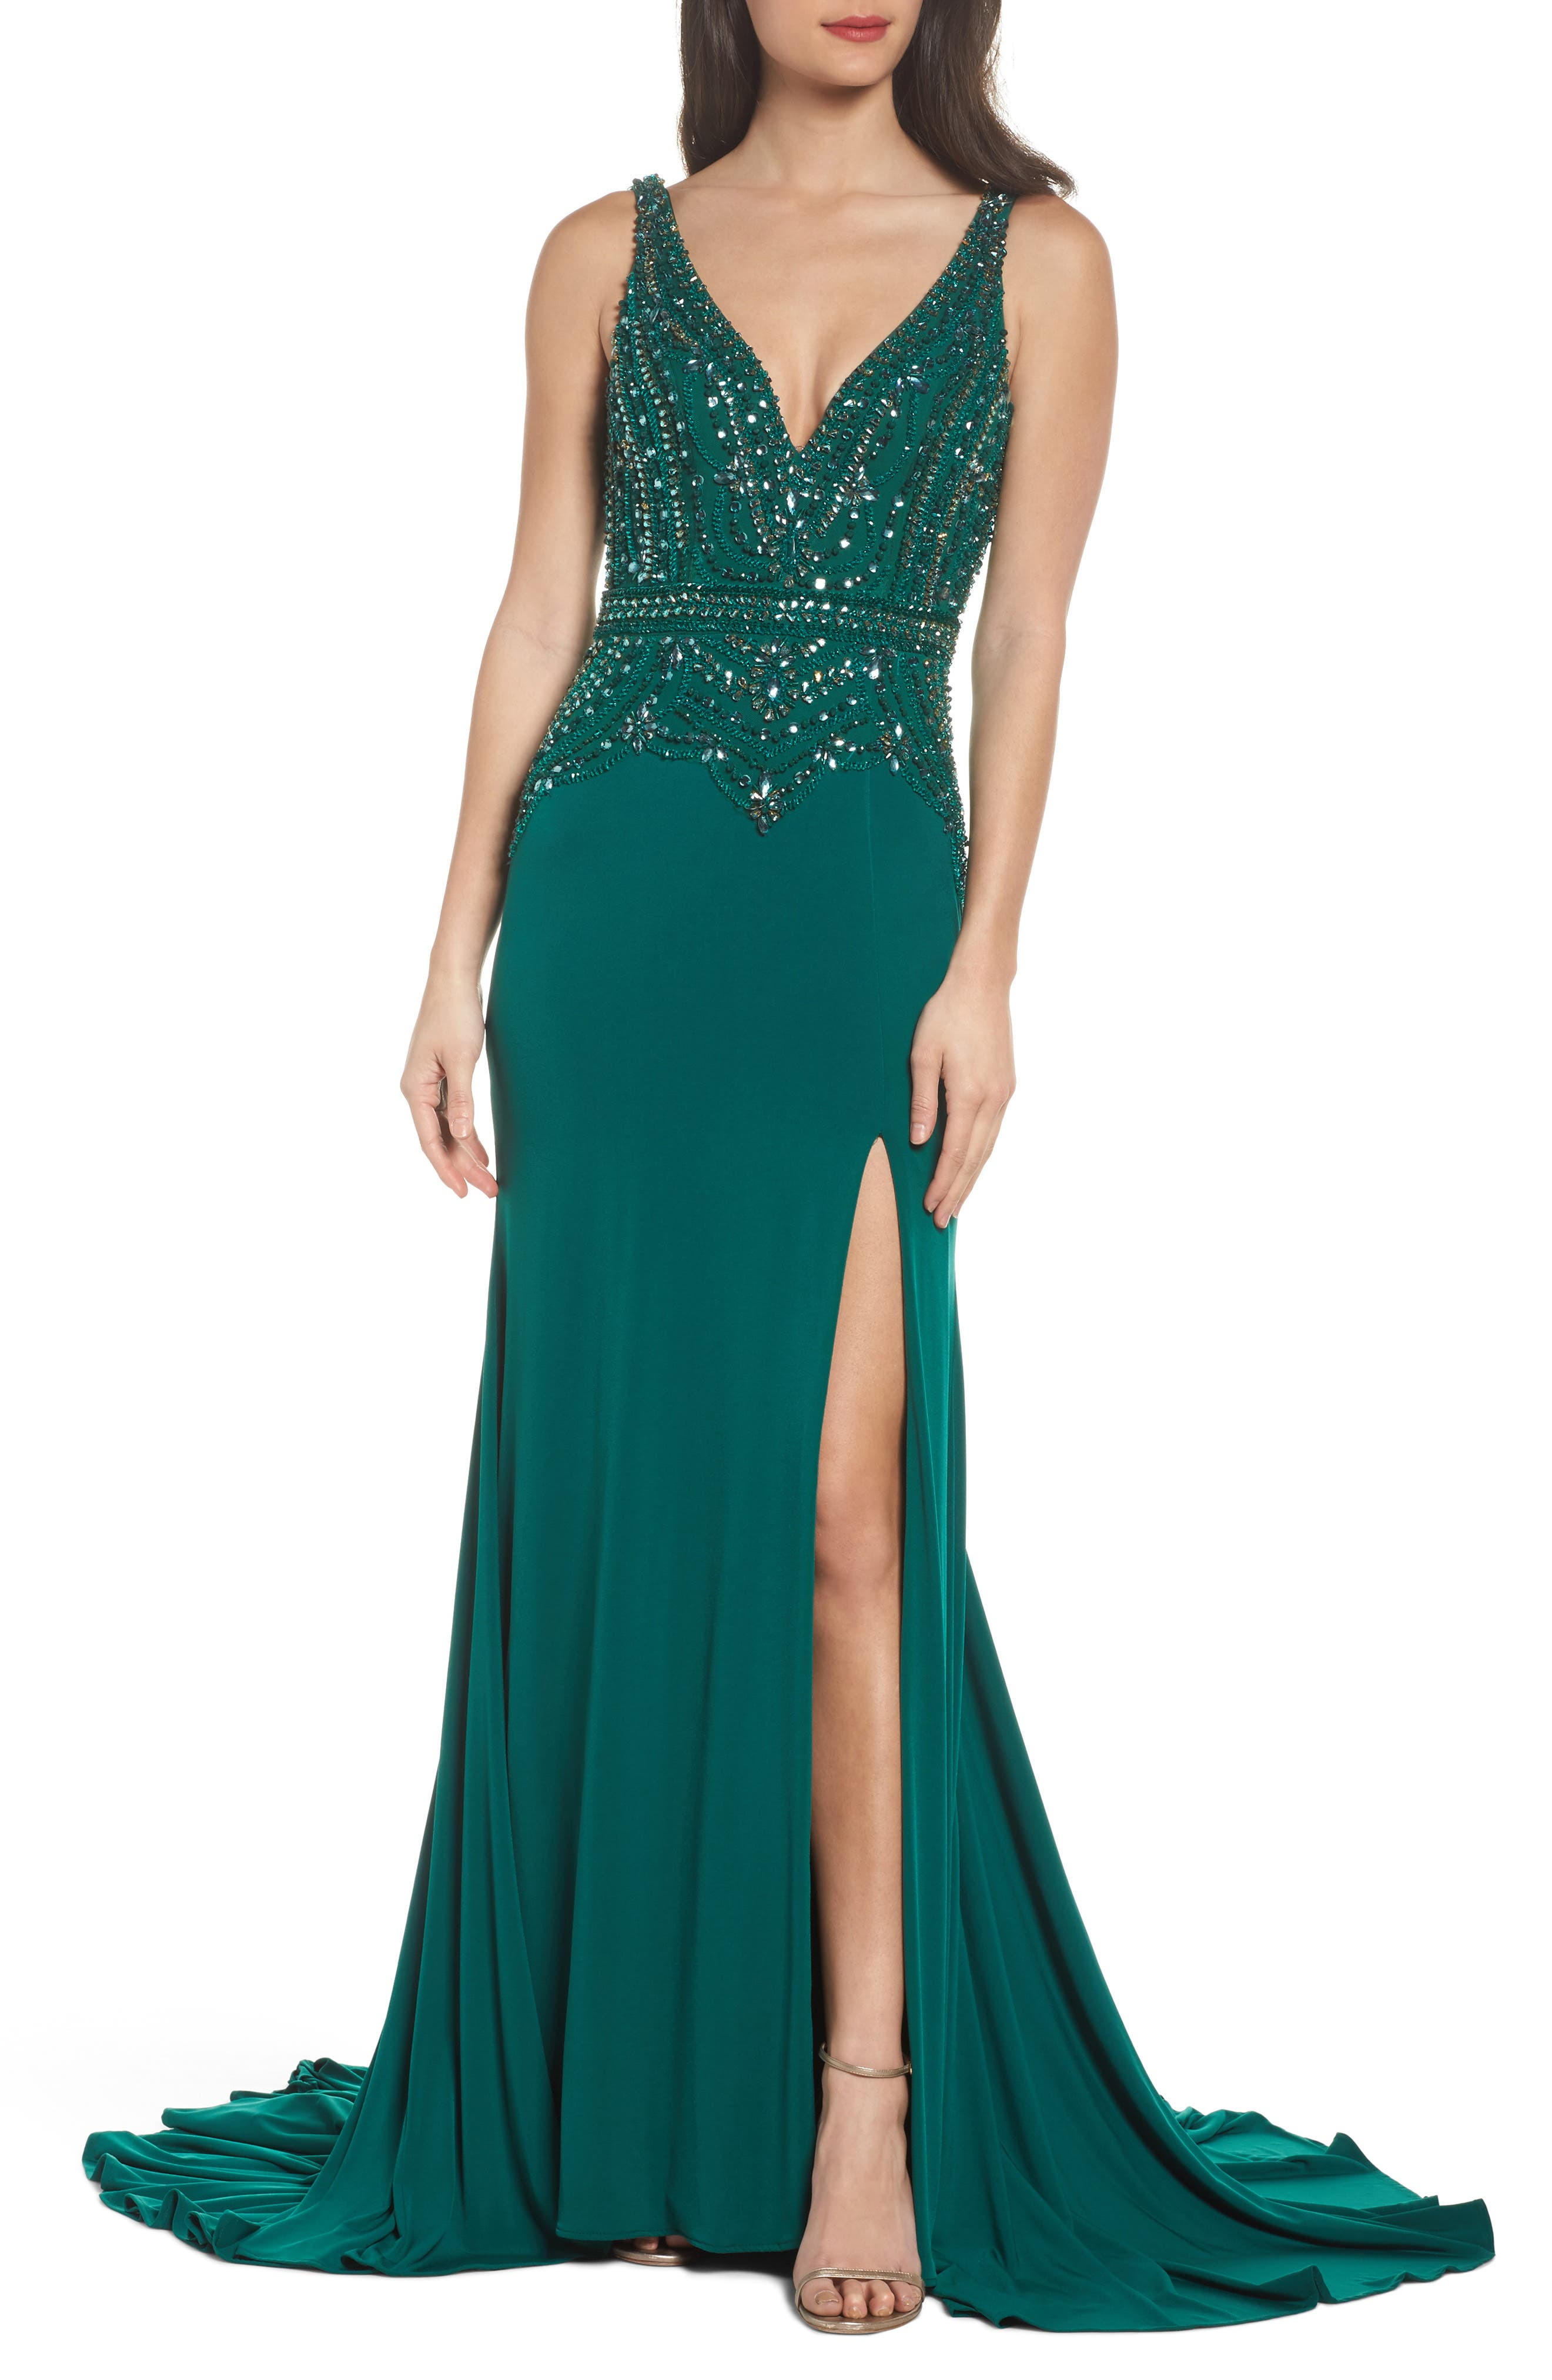 Red Sheath 2018 Prom Dresses | Nordstrom